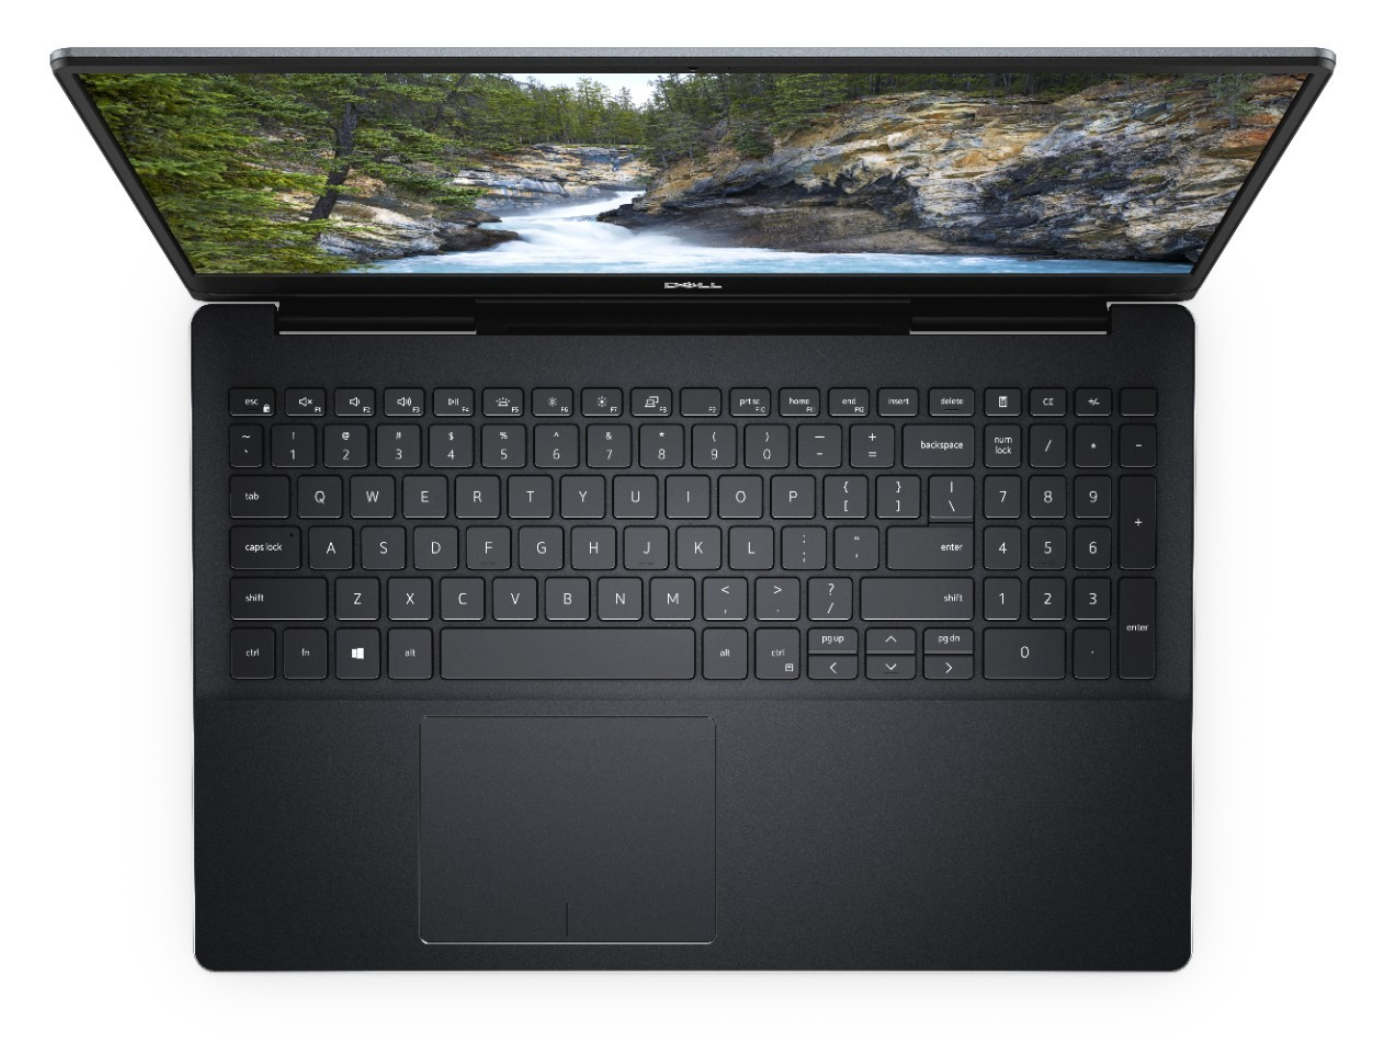 Dell Vostro 13 5390 and Vostro 15 7590 now available